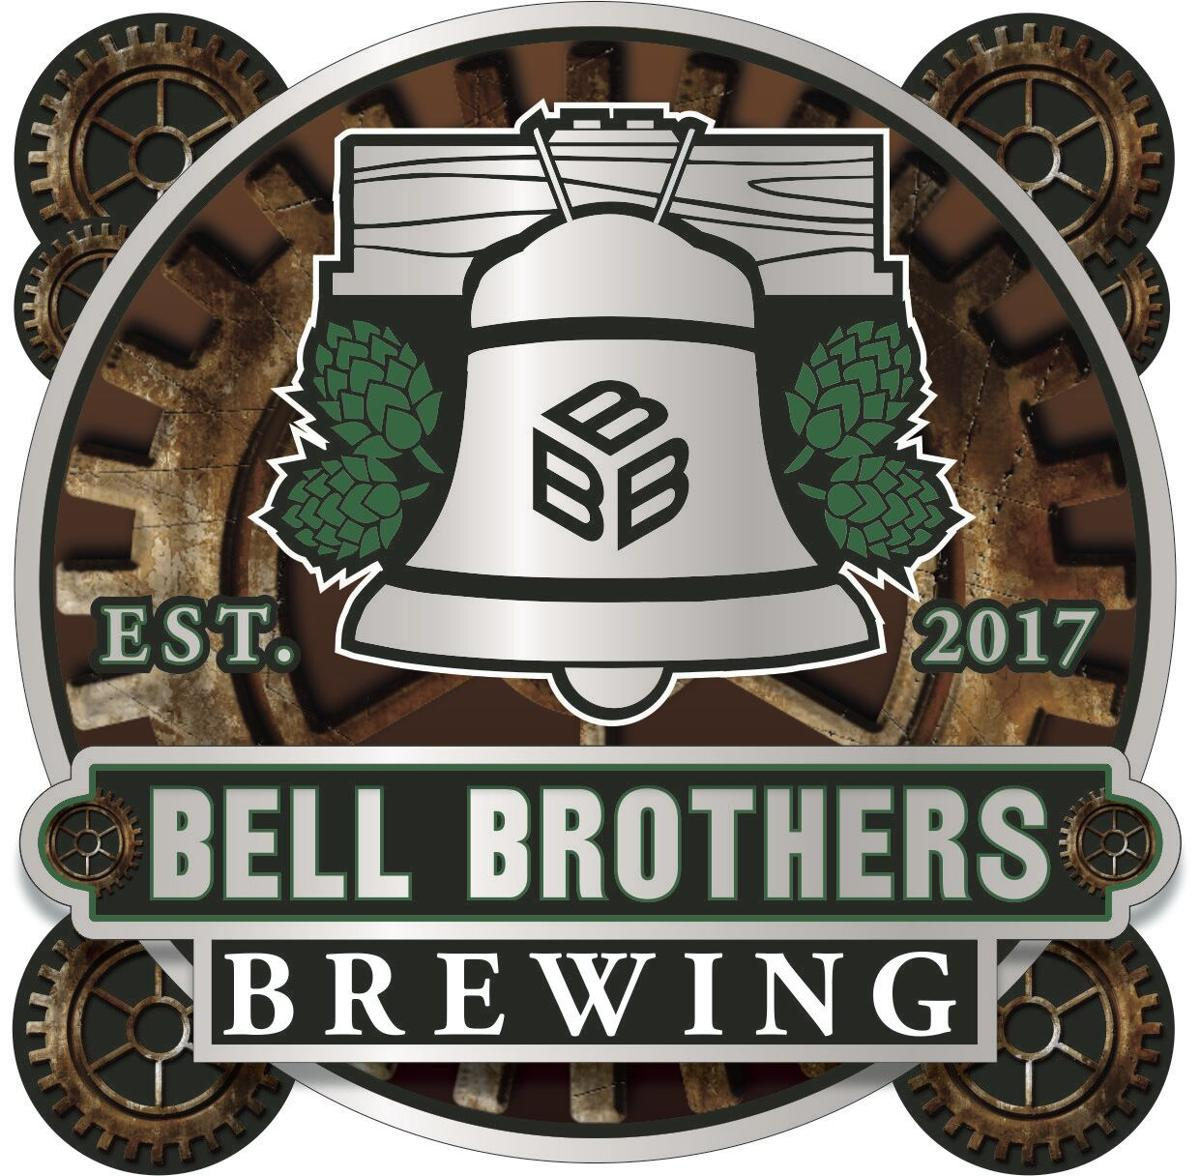 Bell Brothers Brewing